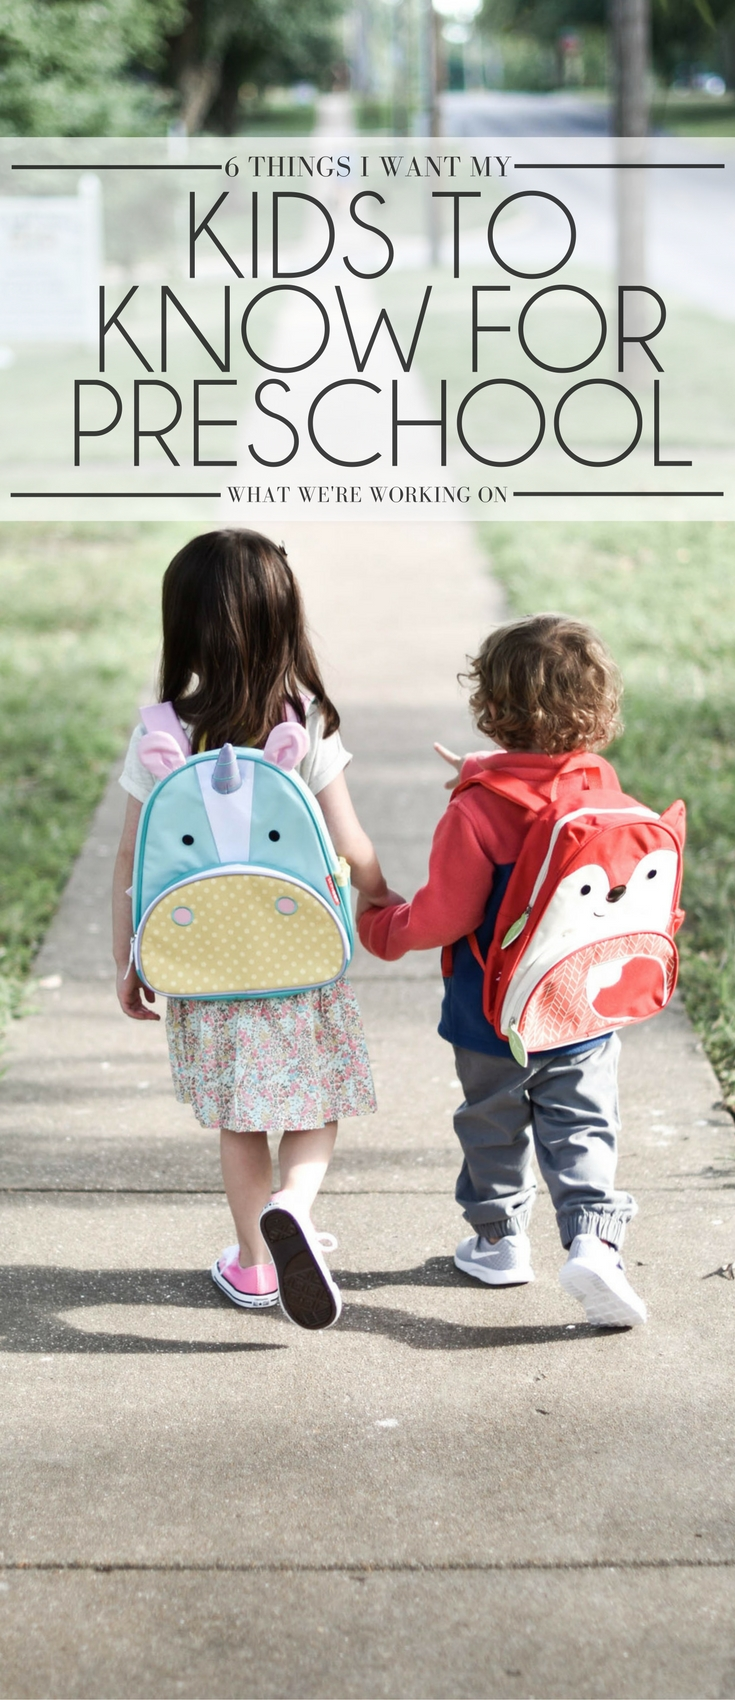 back to school outfits for preschoolers - preschool style for little kids and things preschoolers need to know